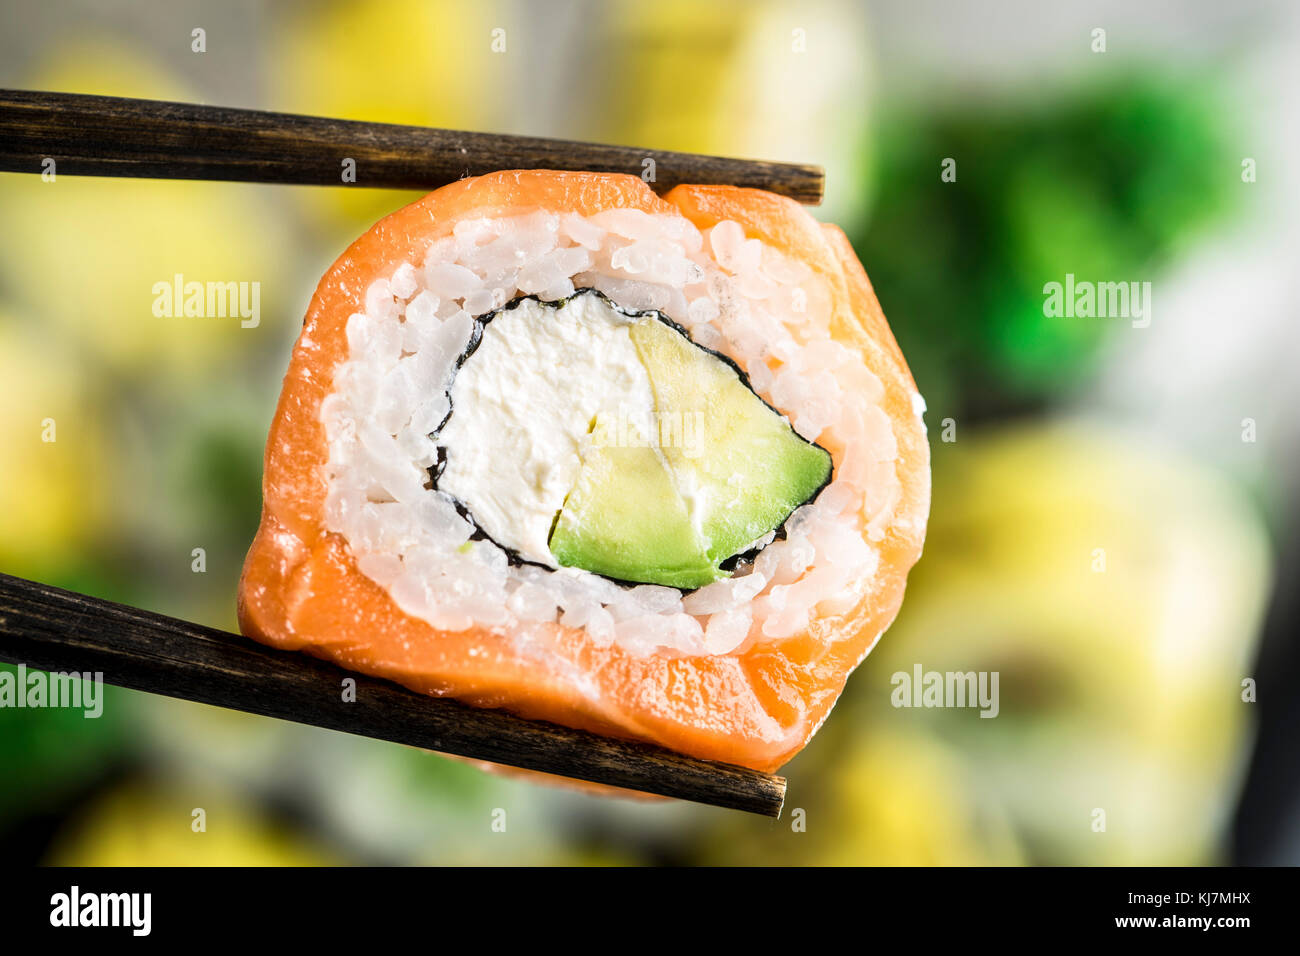 Chopsticks hold philadelphia roll over blurred plate of sushi - Stock Image